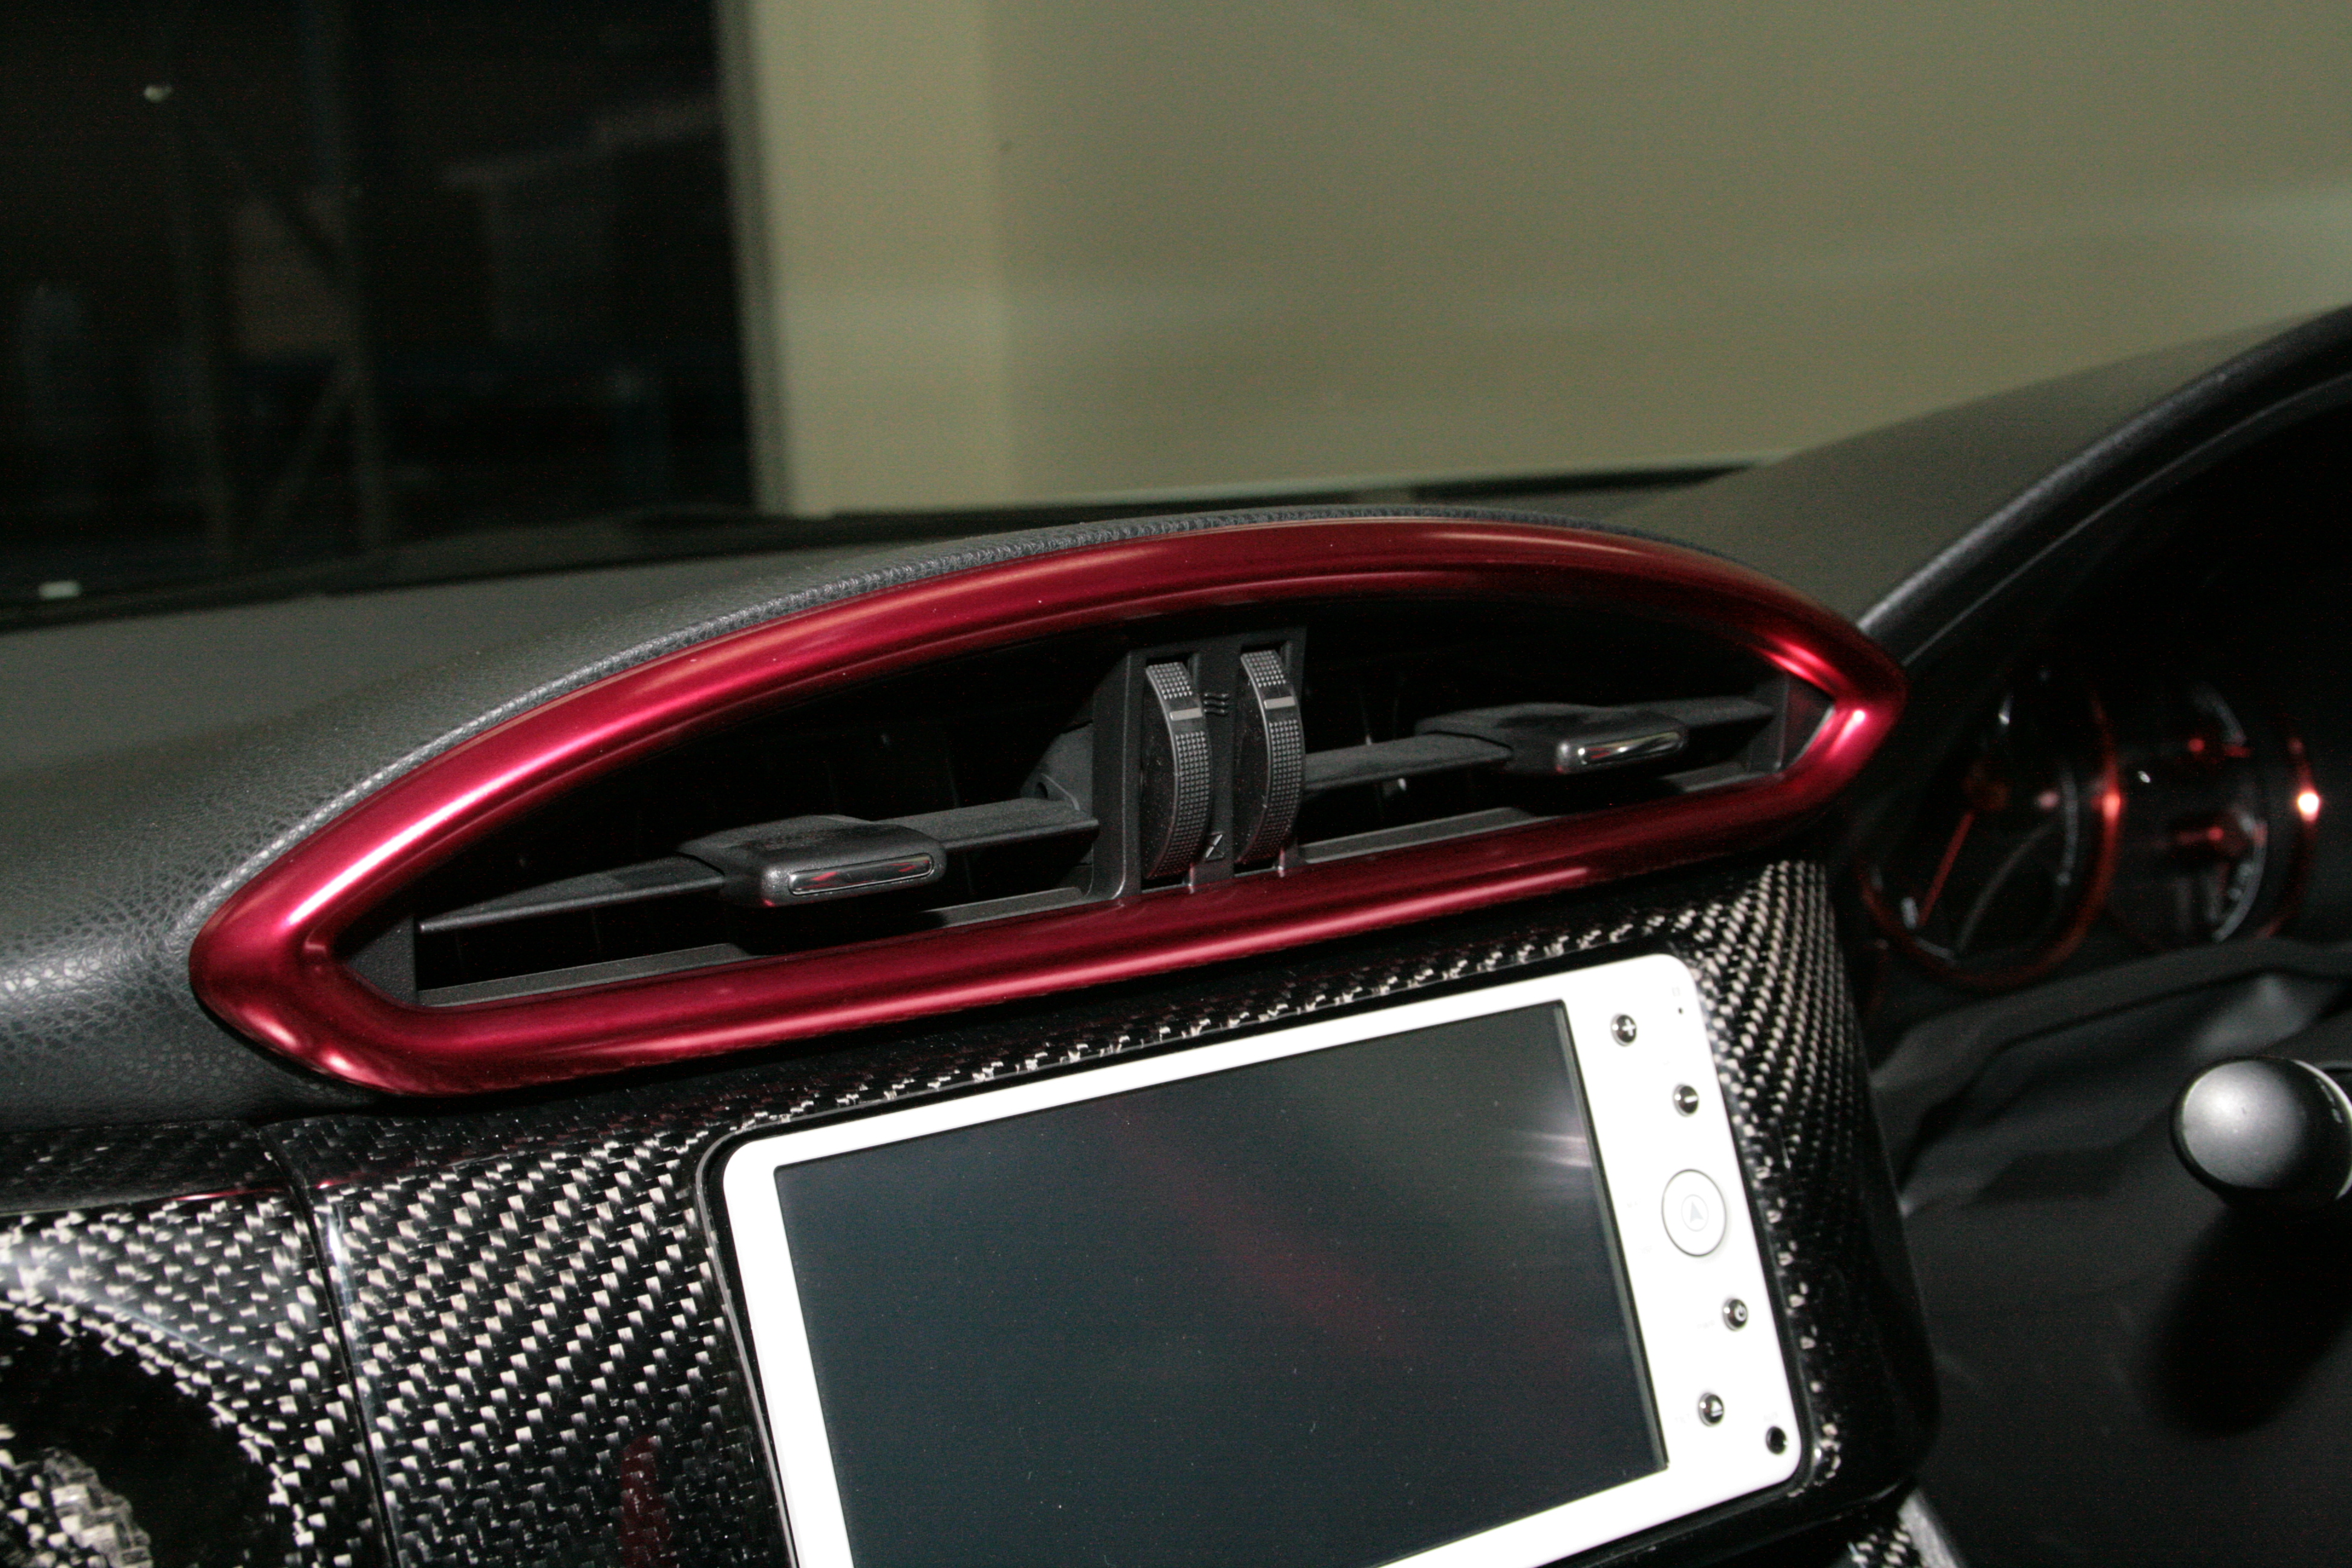 Scion fr s subaru brz orange shift panel cover toyota 86 gt86 frs interior trim ebay for Scion frs interior accessories